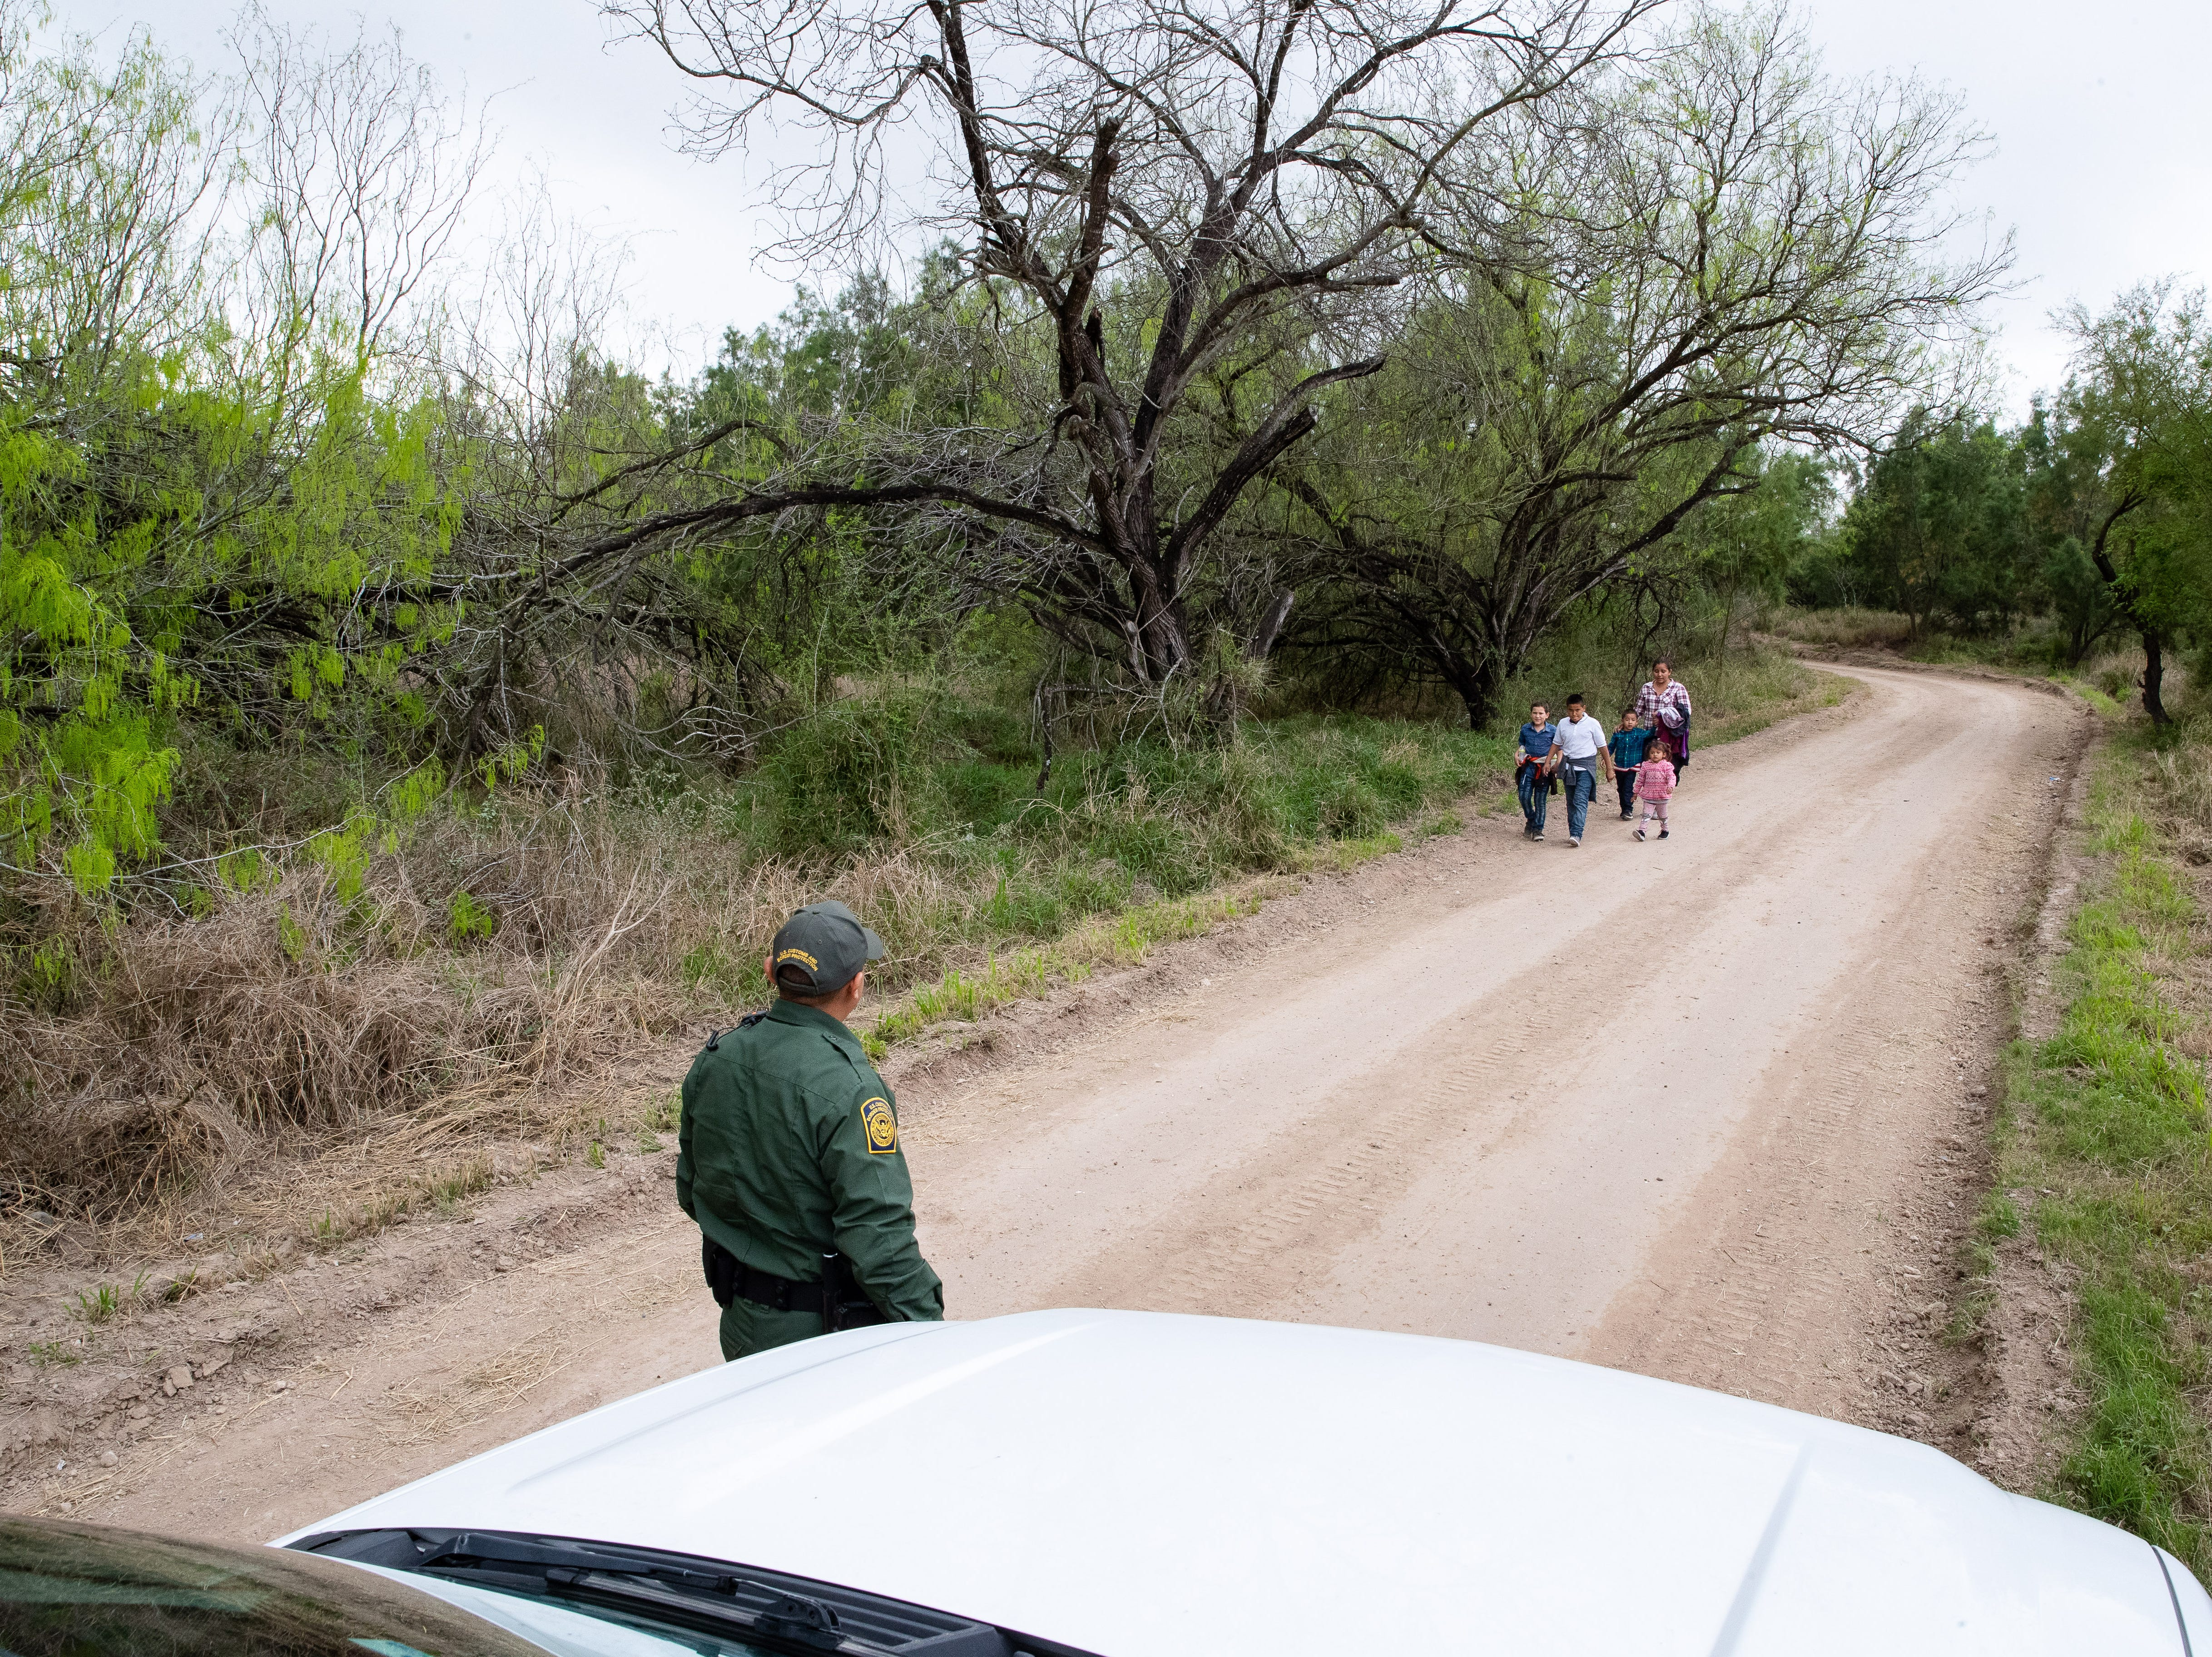 Border Patrol Agent Hermann Rivera approaches a group of migrants along a dirt road near Mission, Texas, on Tuesday, Feb. 28, 2019.